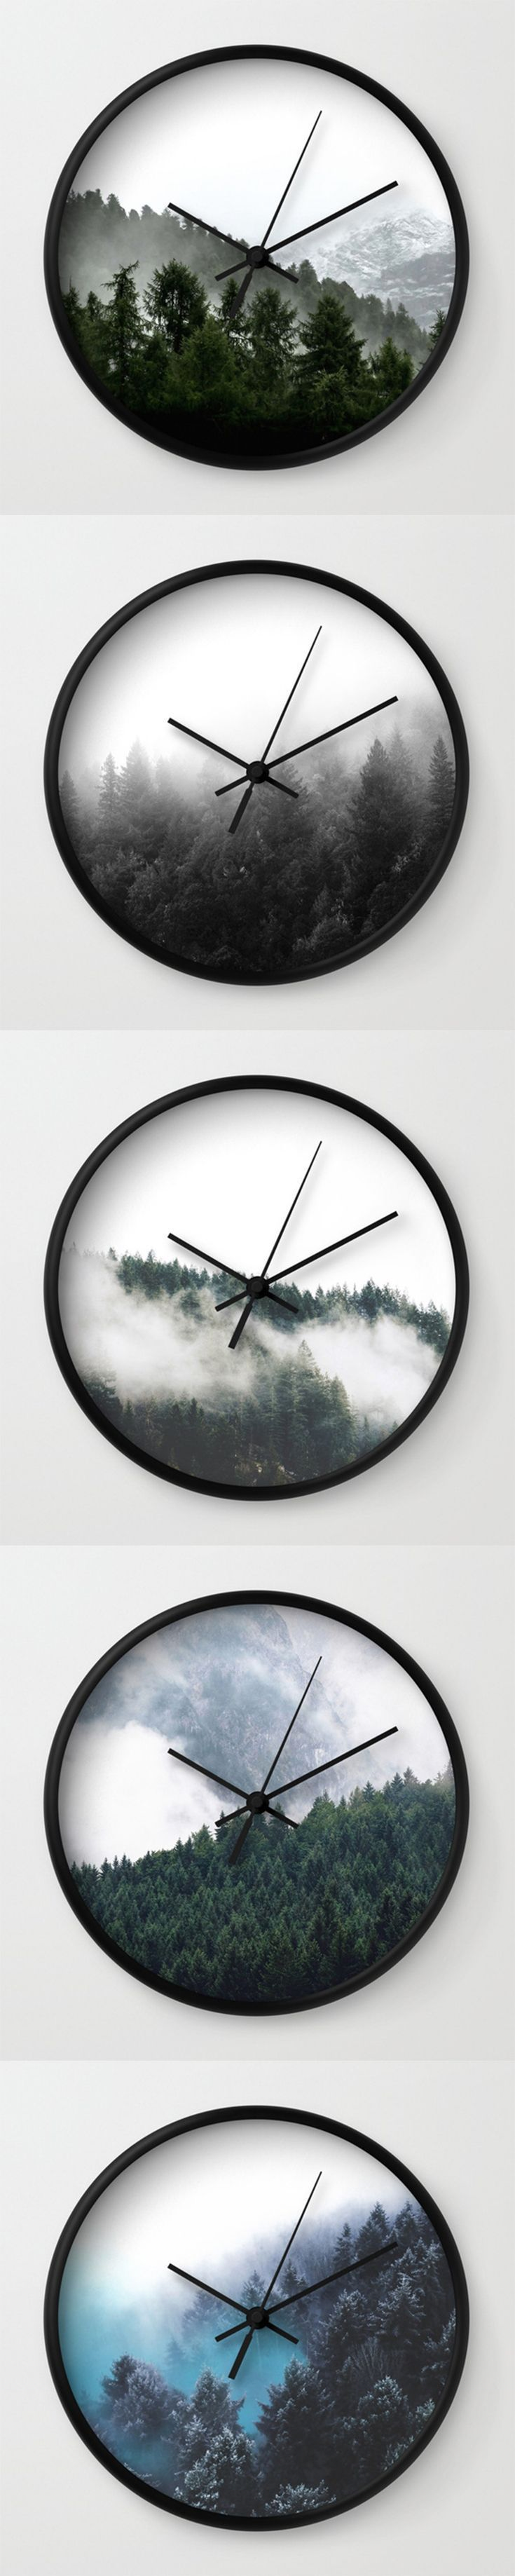 Modern Forest Wall Clocks By Neptune Essentials On Society6 Home Decor, Wall  Decor, Wall Clocks, Hanging Clocks, Minimalist Clocks, Modern Designs, ...